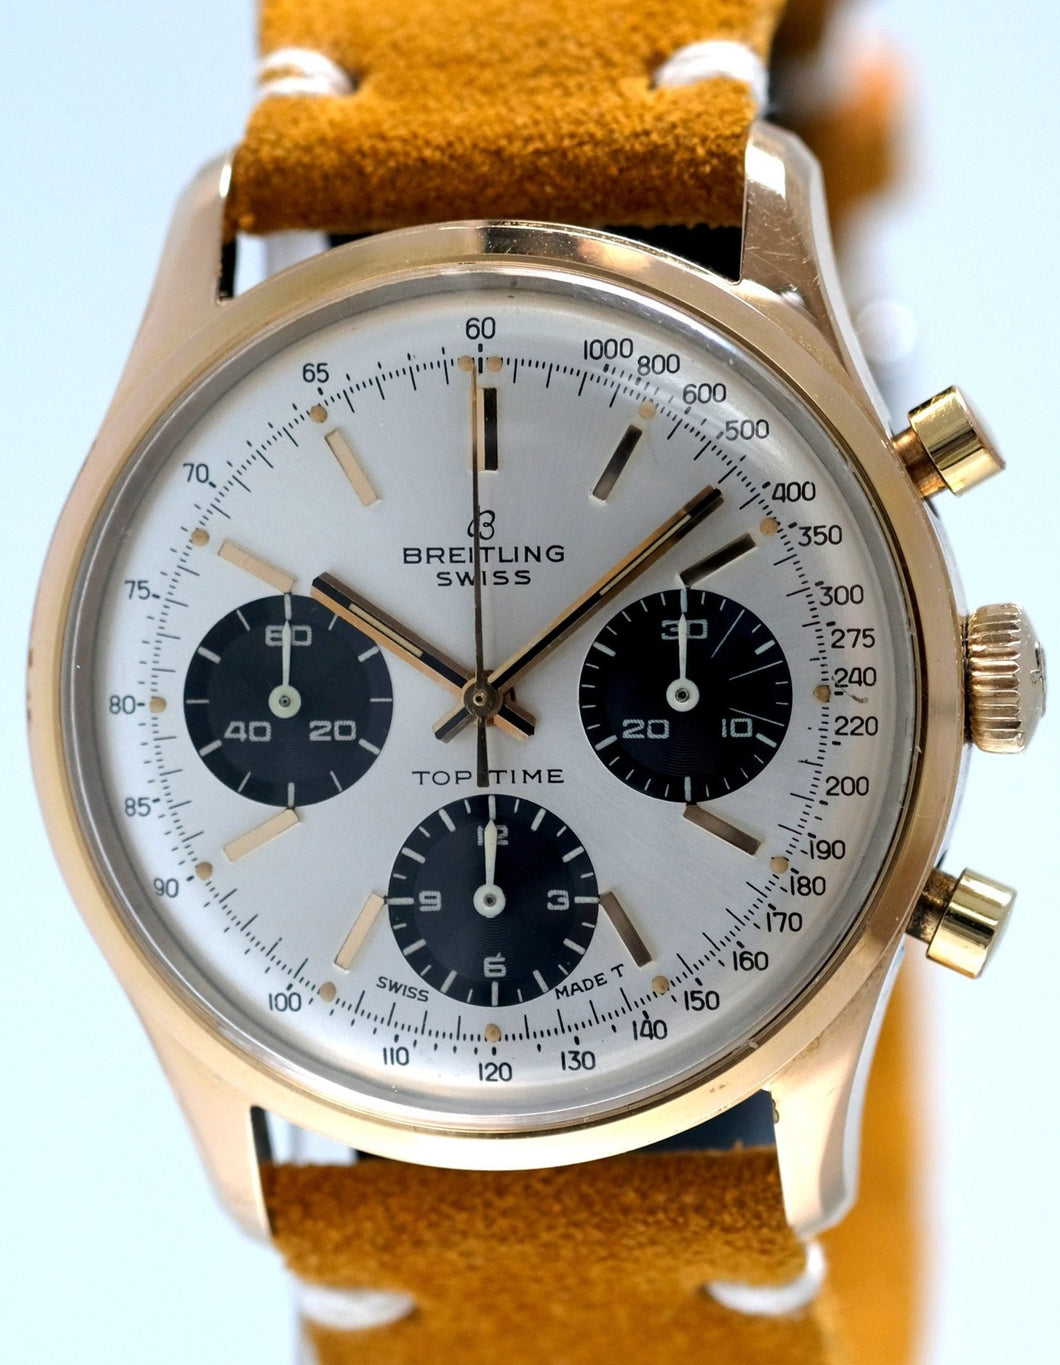 Breitling Chronograph in Gold Ref. 810